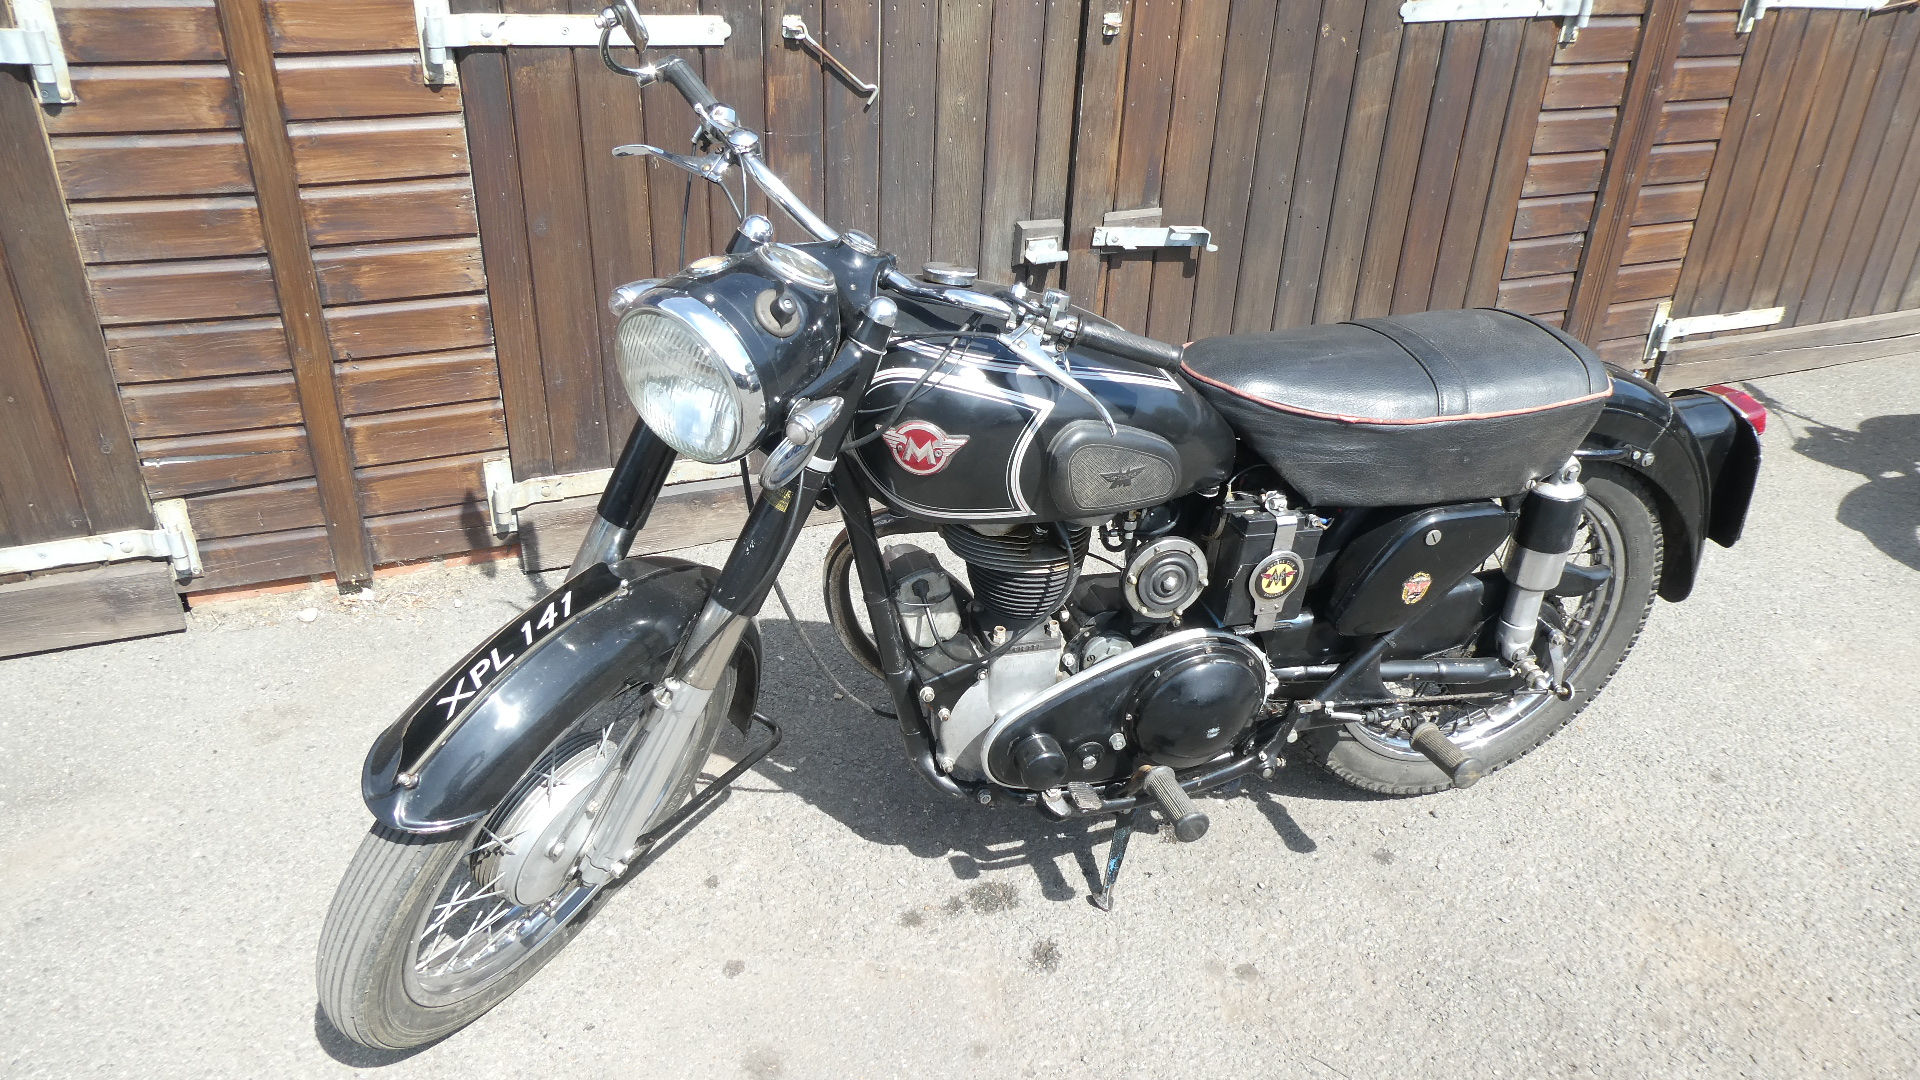 1955 Matchless G3/L 350cc Motorcycle for sale